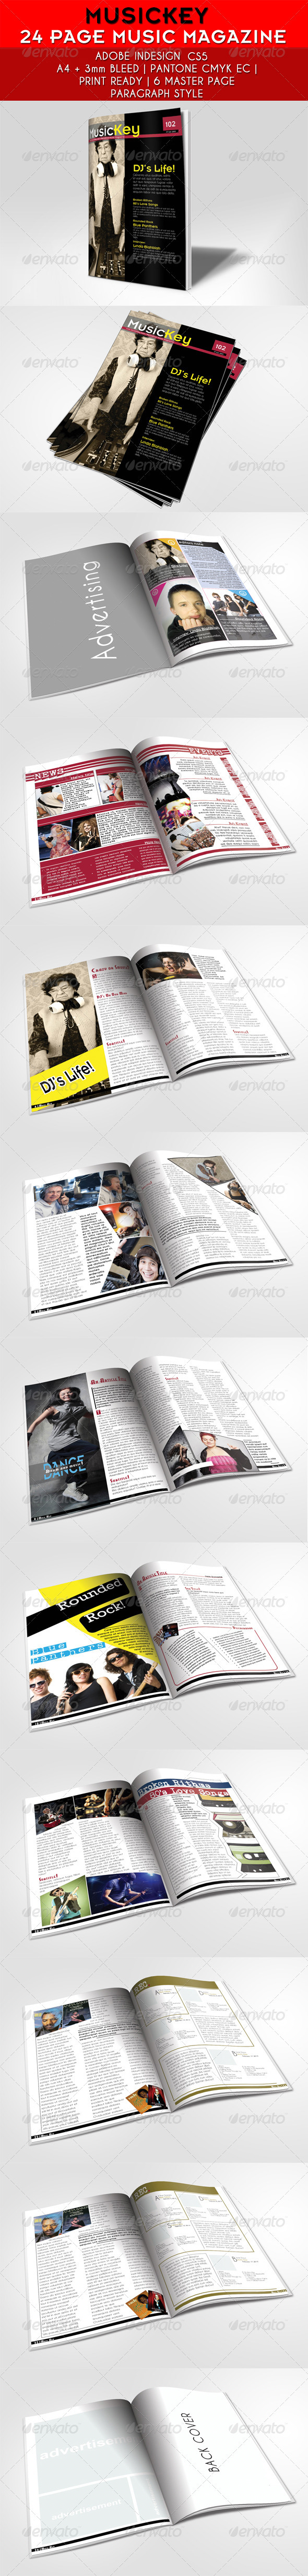 24 Pages Musickey Music Magazine Template - Magazines Print Templates